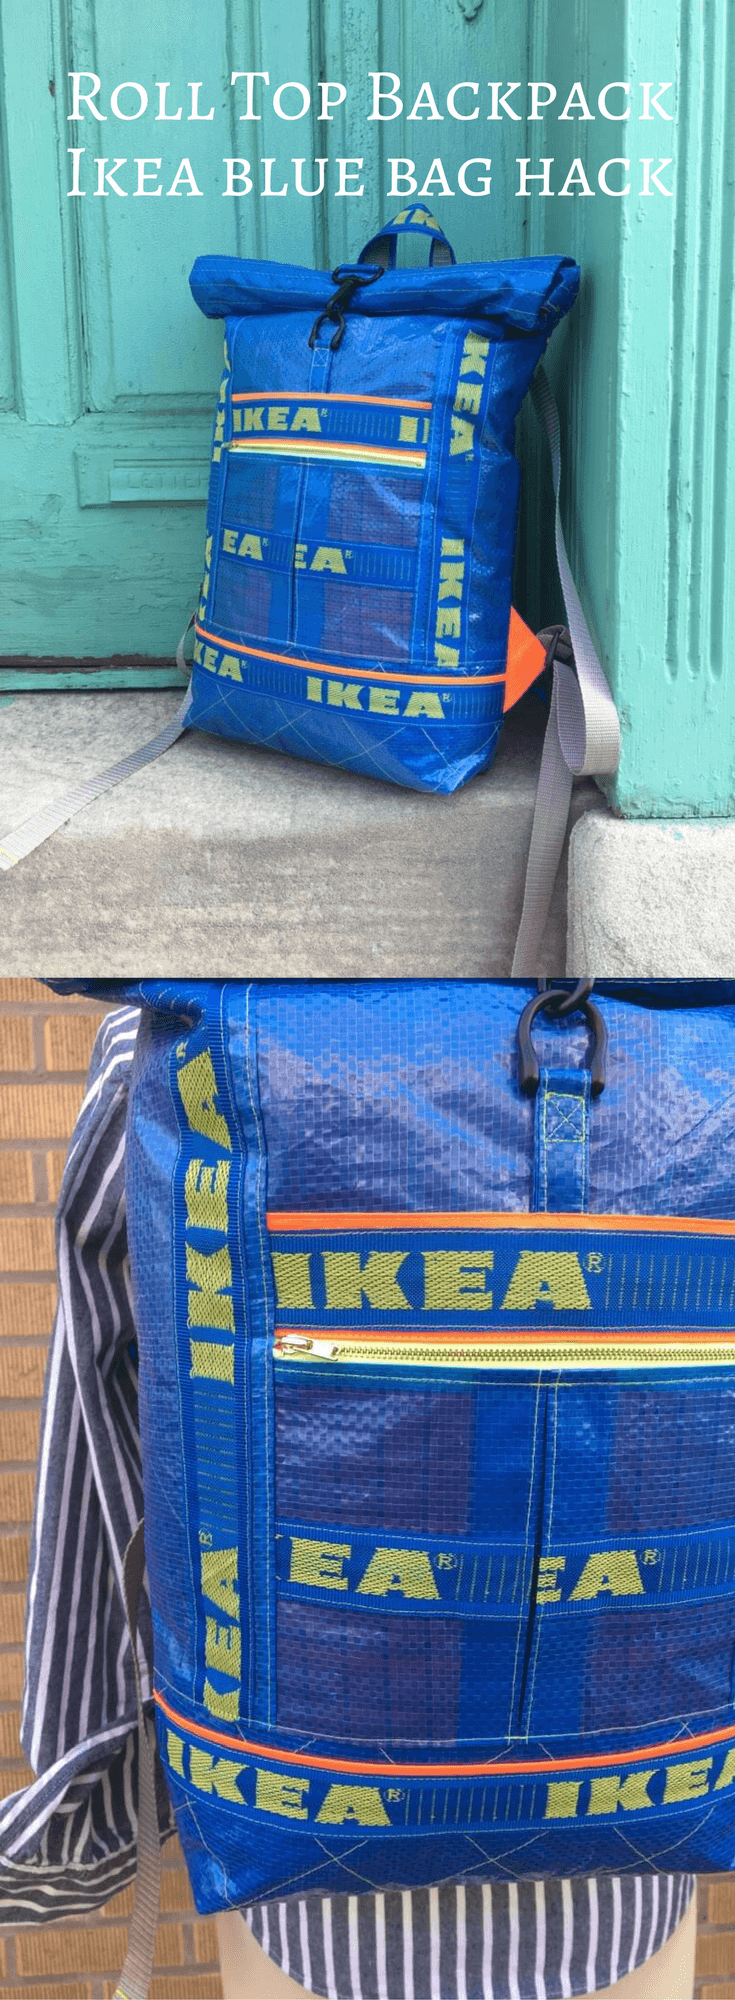 Sew good! A Roll-Top Backpack from IKEA Blue Bags - IKEA Hackers